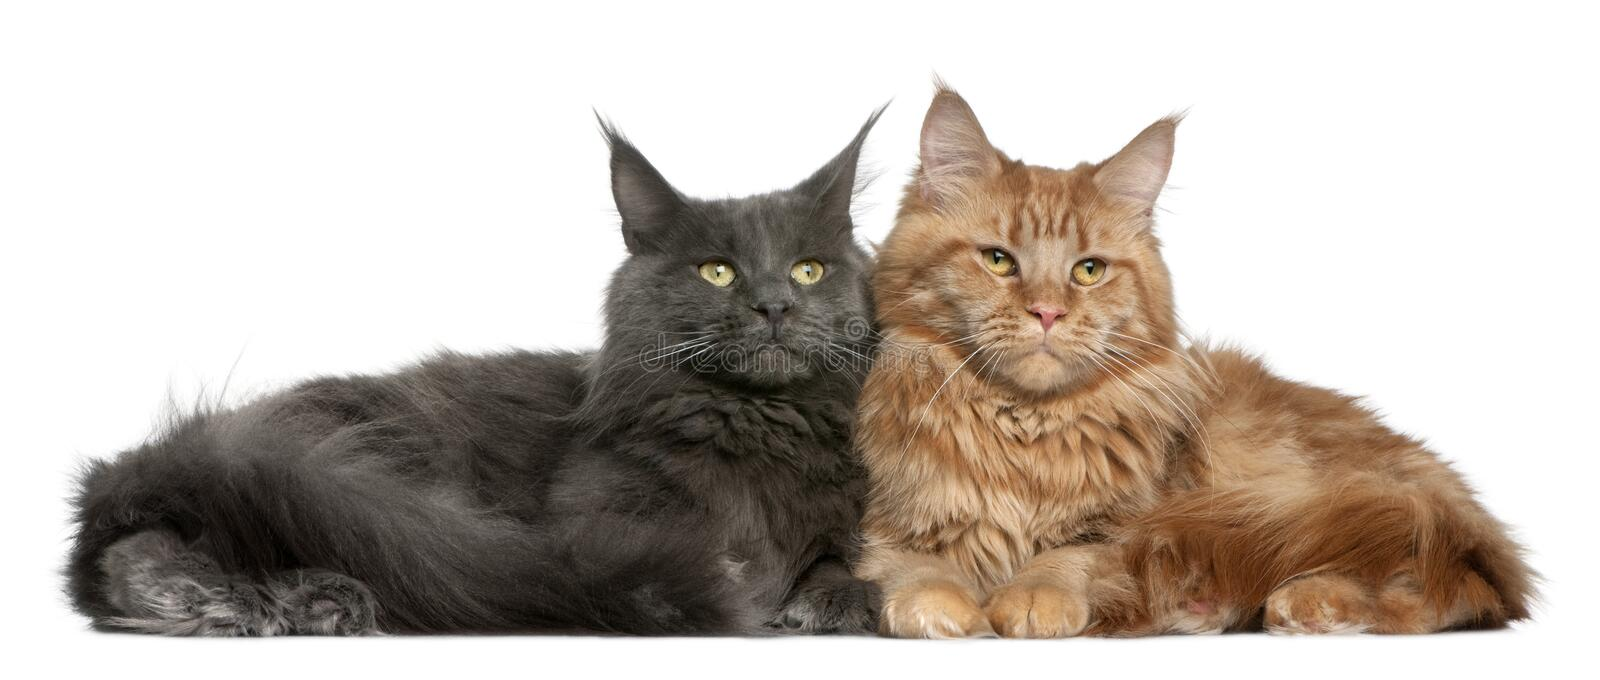 Two Maine coons, 15 months old. Sitting in front of white background royalty free stock photos